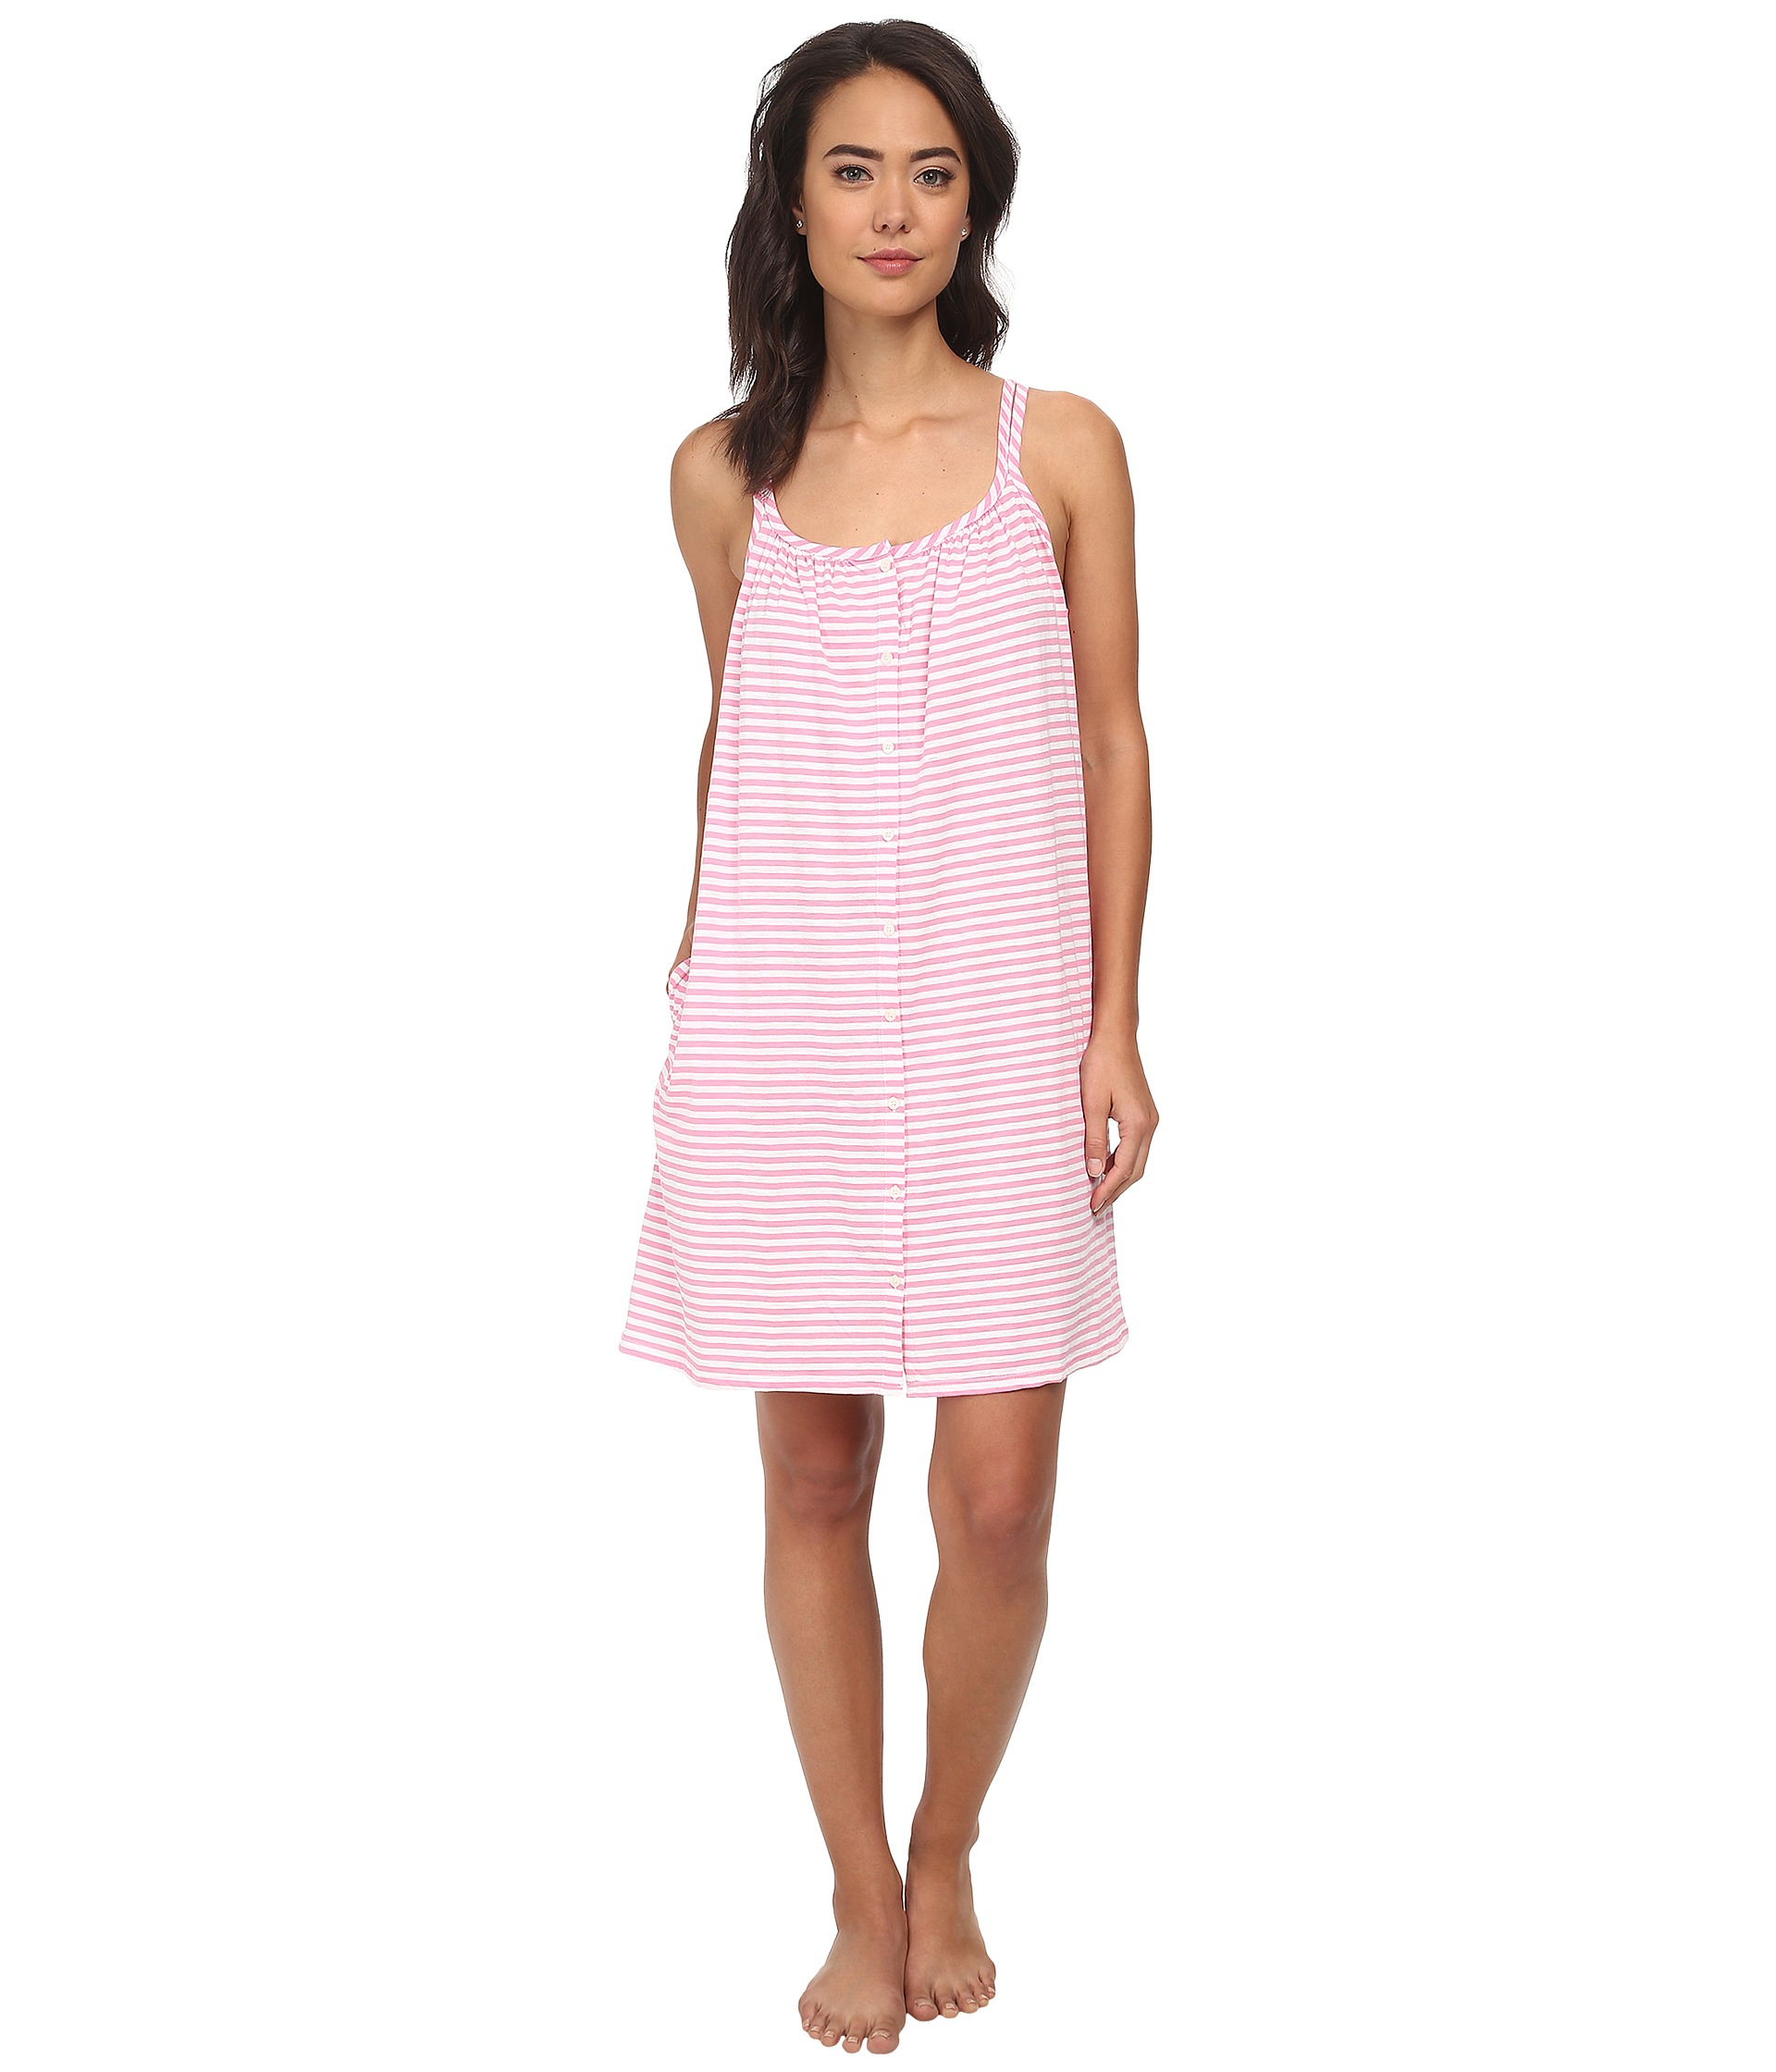 lyst lauren by ralph lauren sleeveless striped chemise in pink. Black Bedroom Furniture Sets. Home Design Ideas